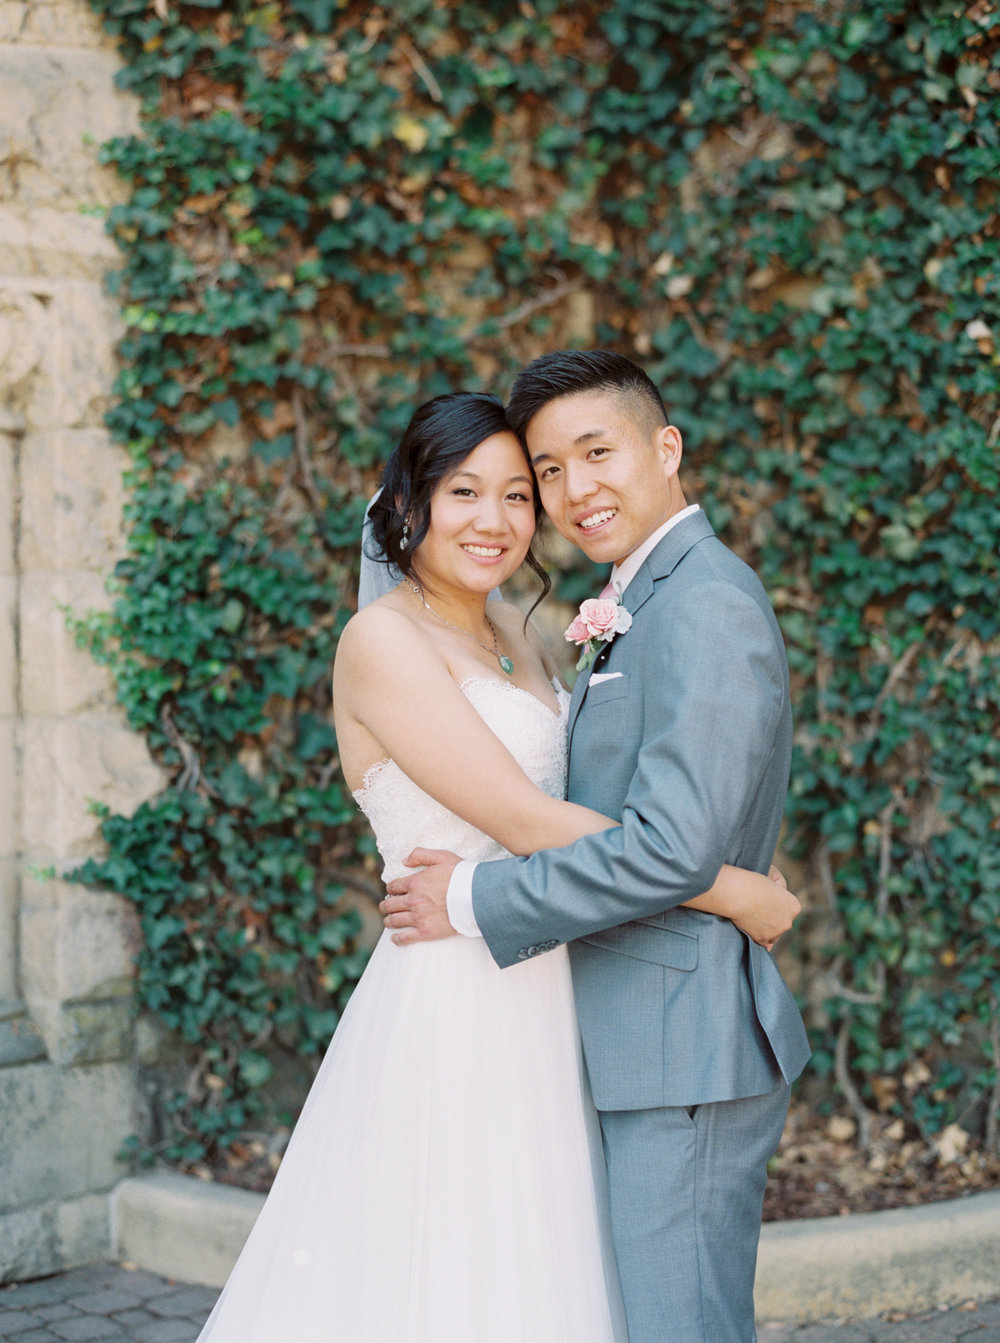 trynhphoto_wedding_photography_Standford_PaloAlto_SF_BayArea_Destination_OC_HA-47.jpg